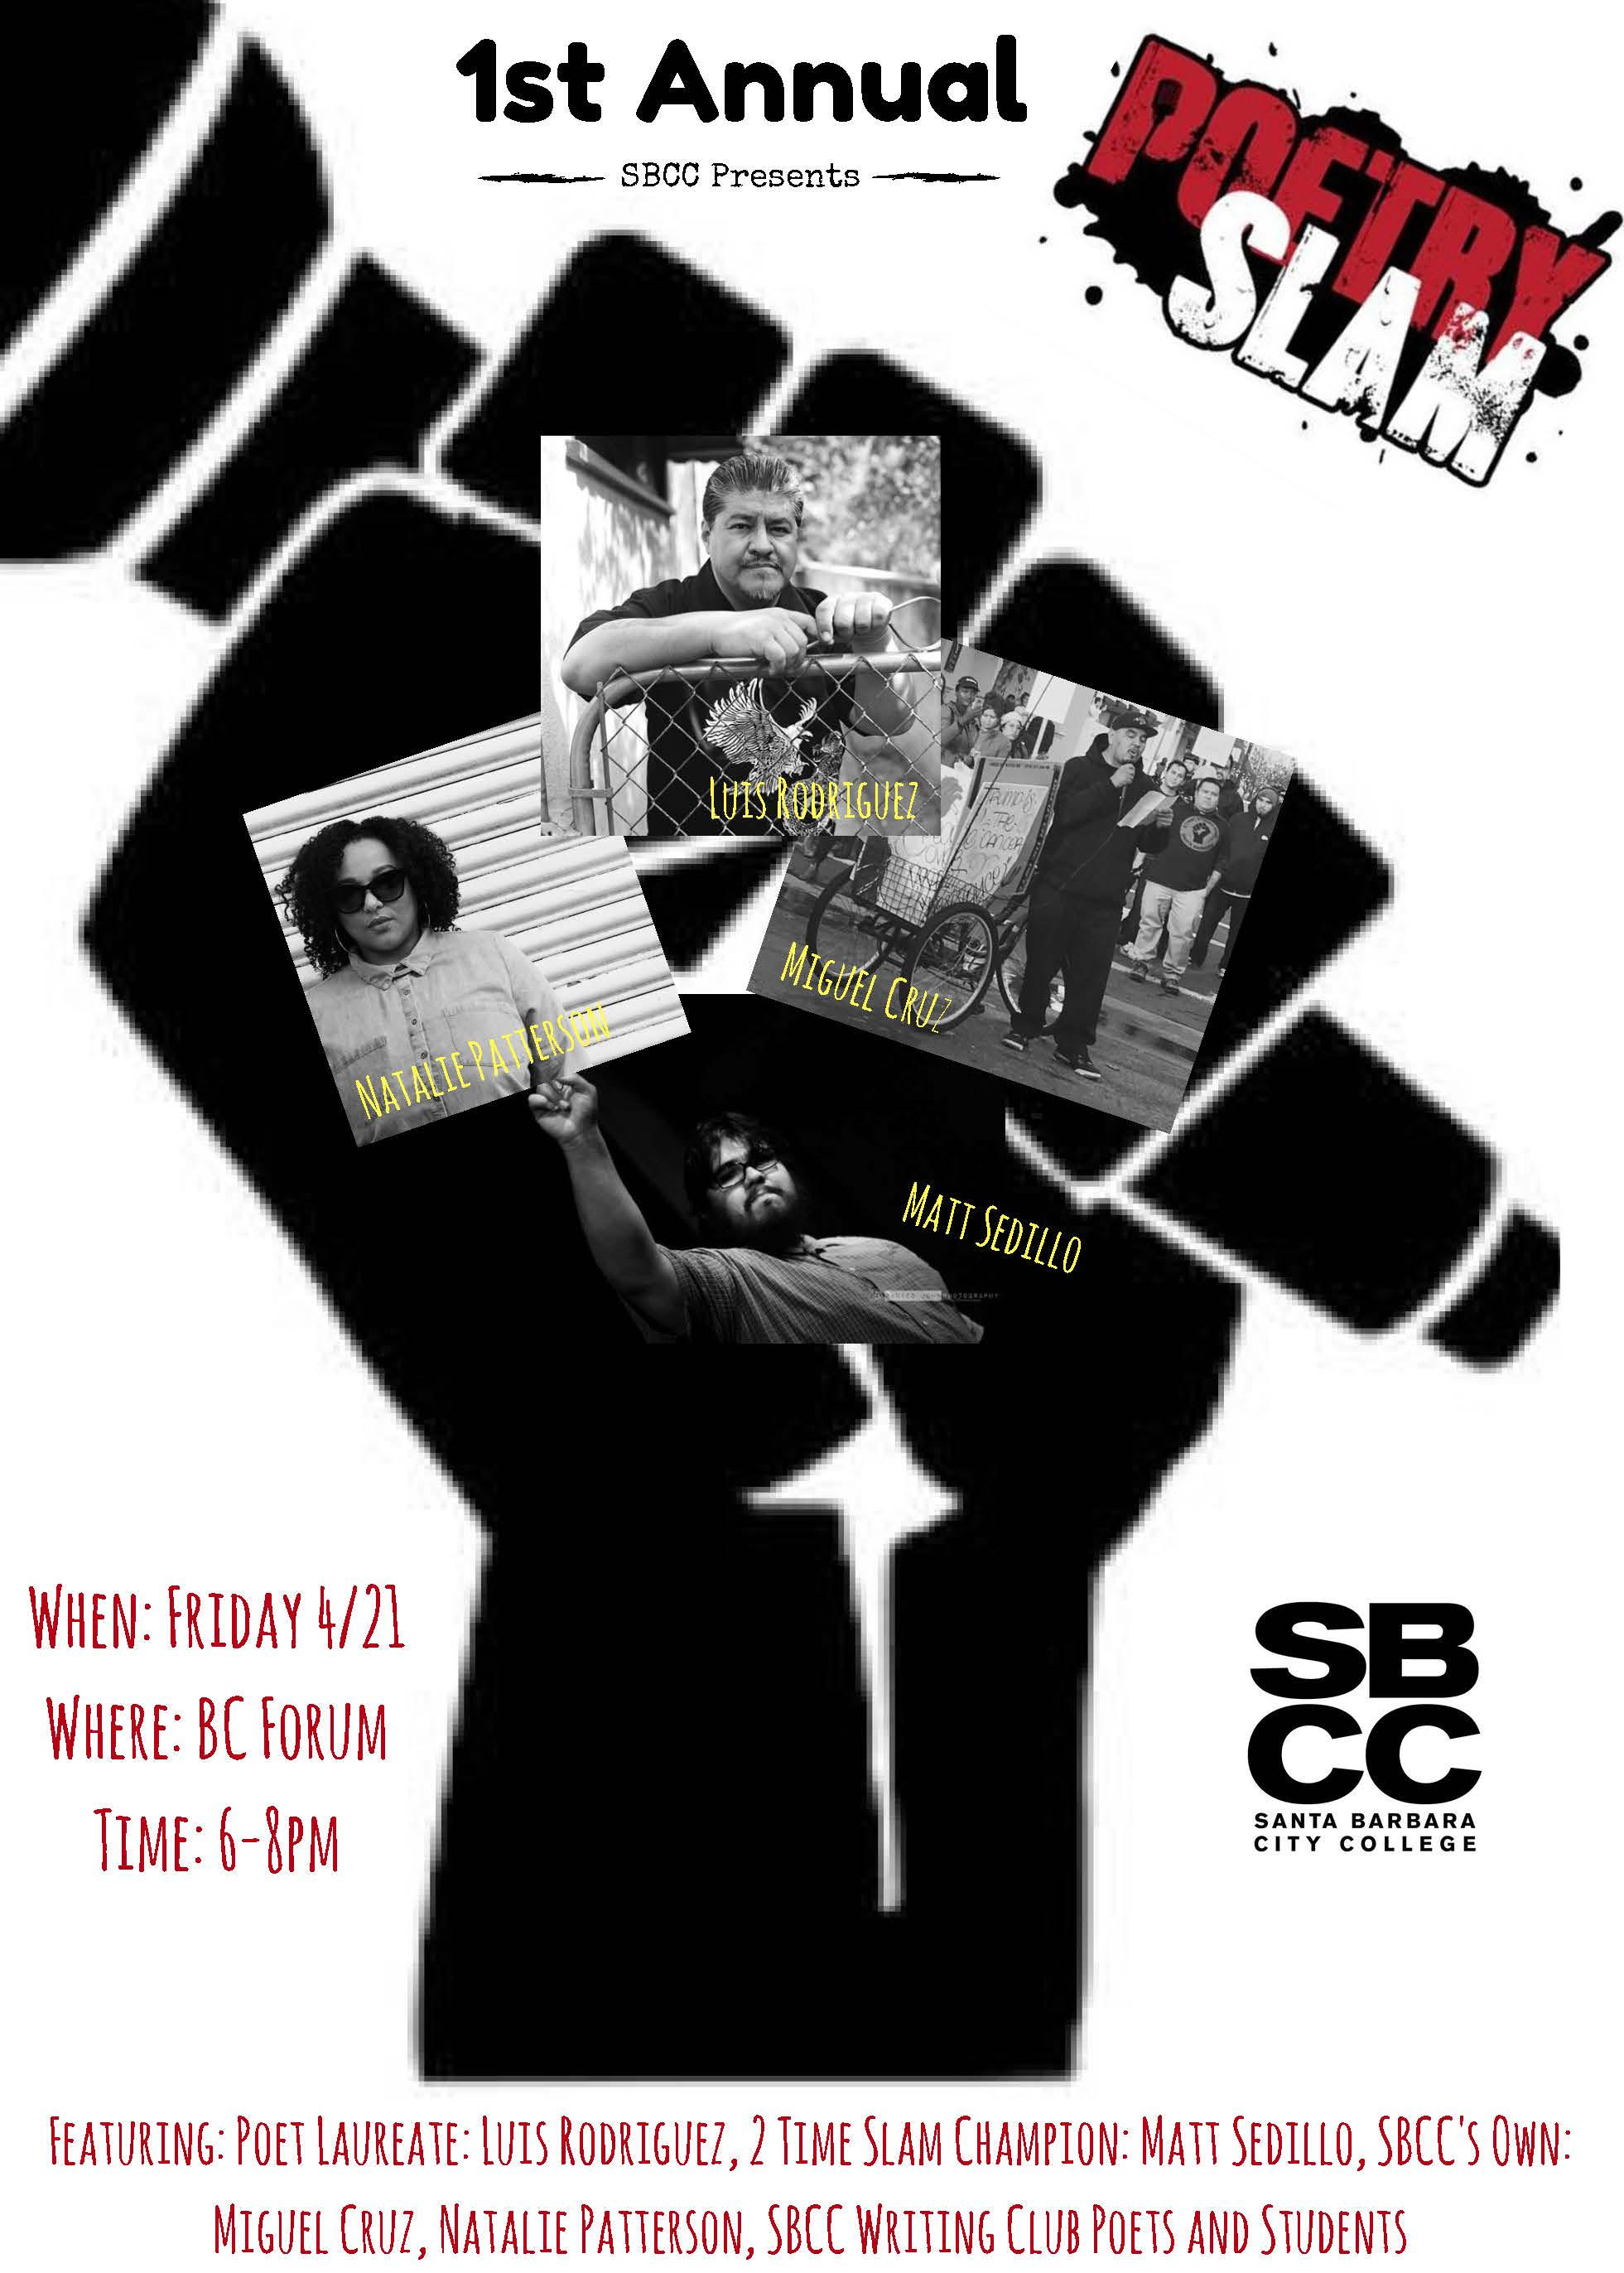 SBCC Poetry Slam featuring Luis Rodriguez, Natalie Patterson, and others